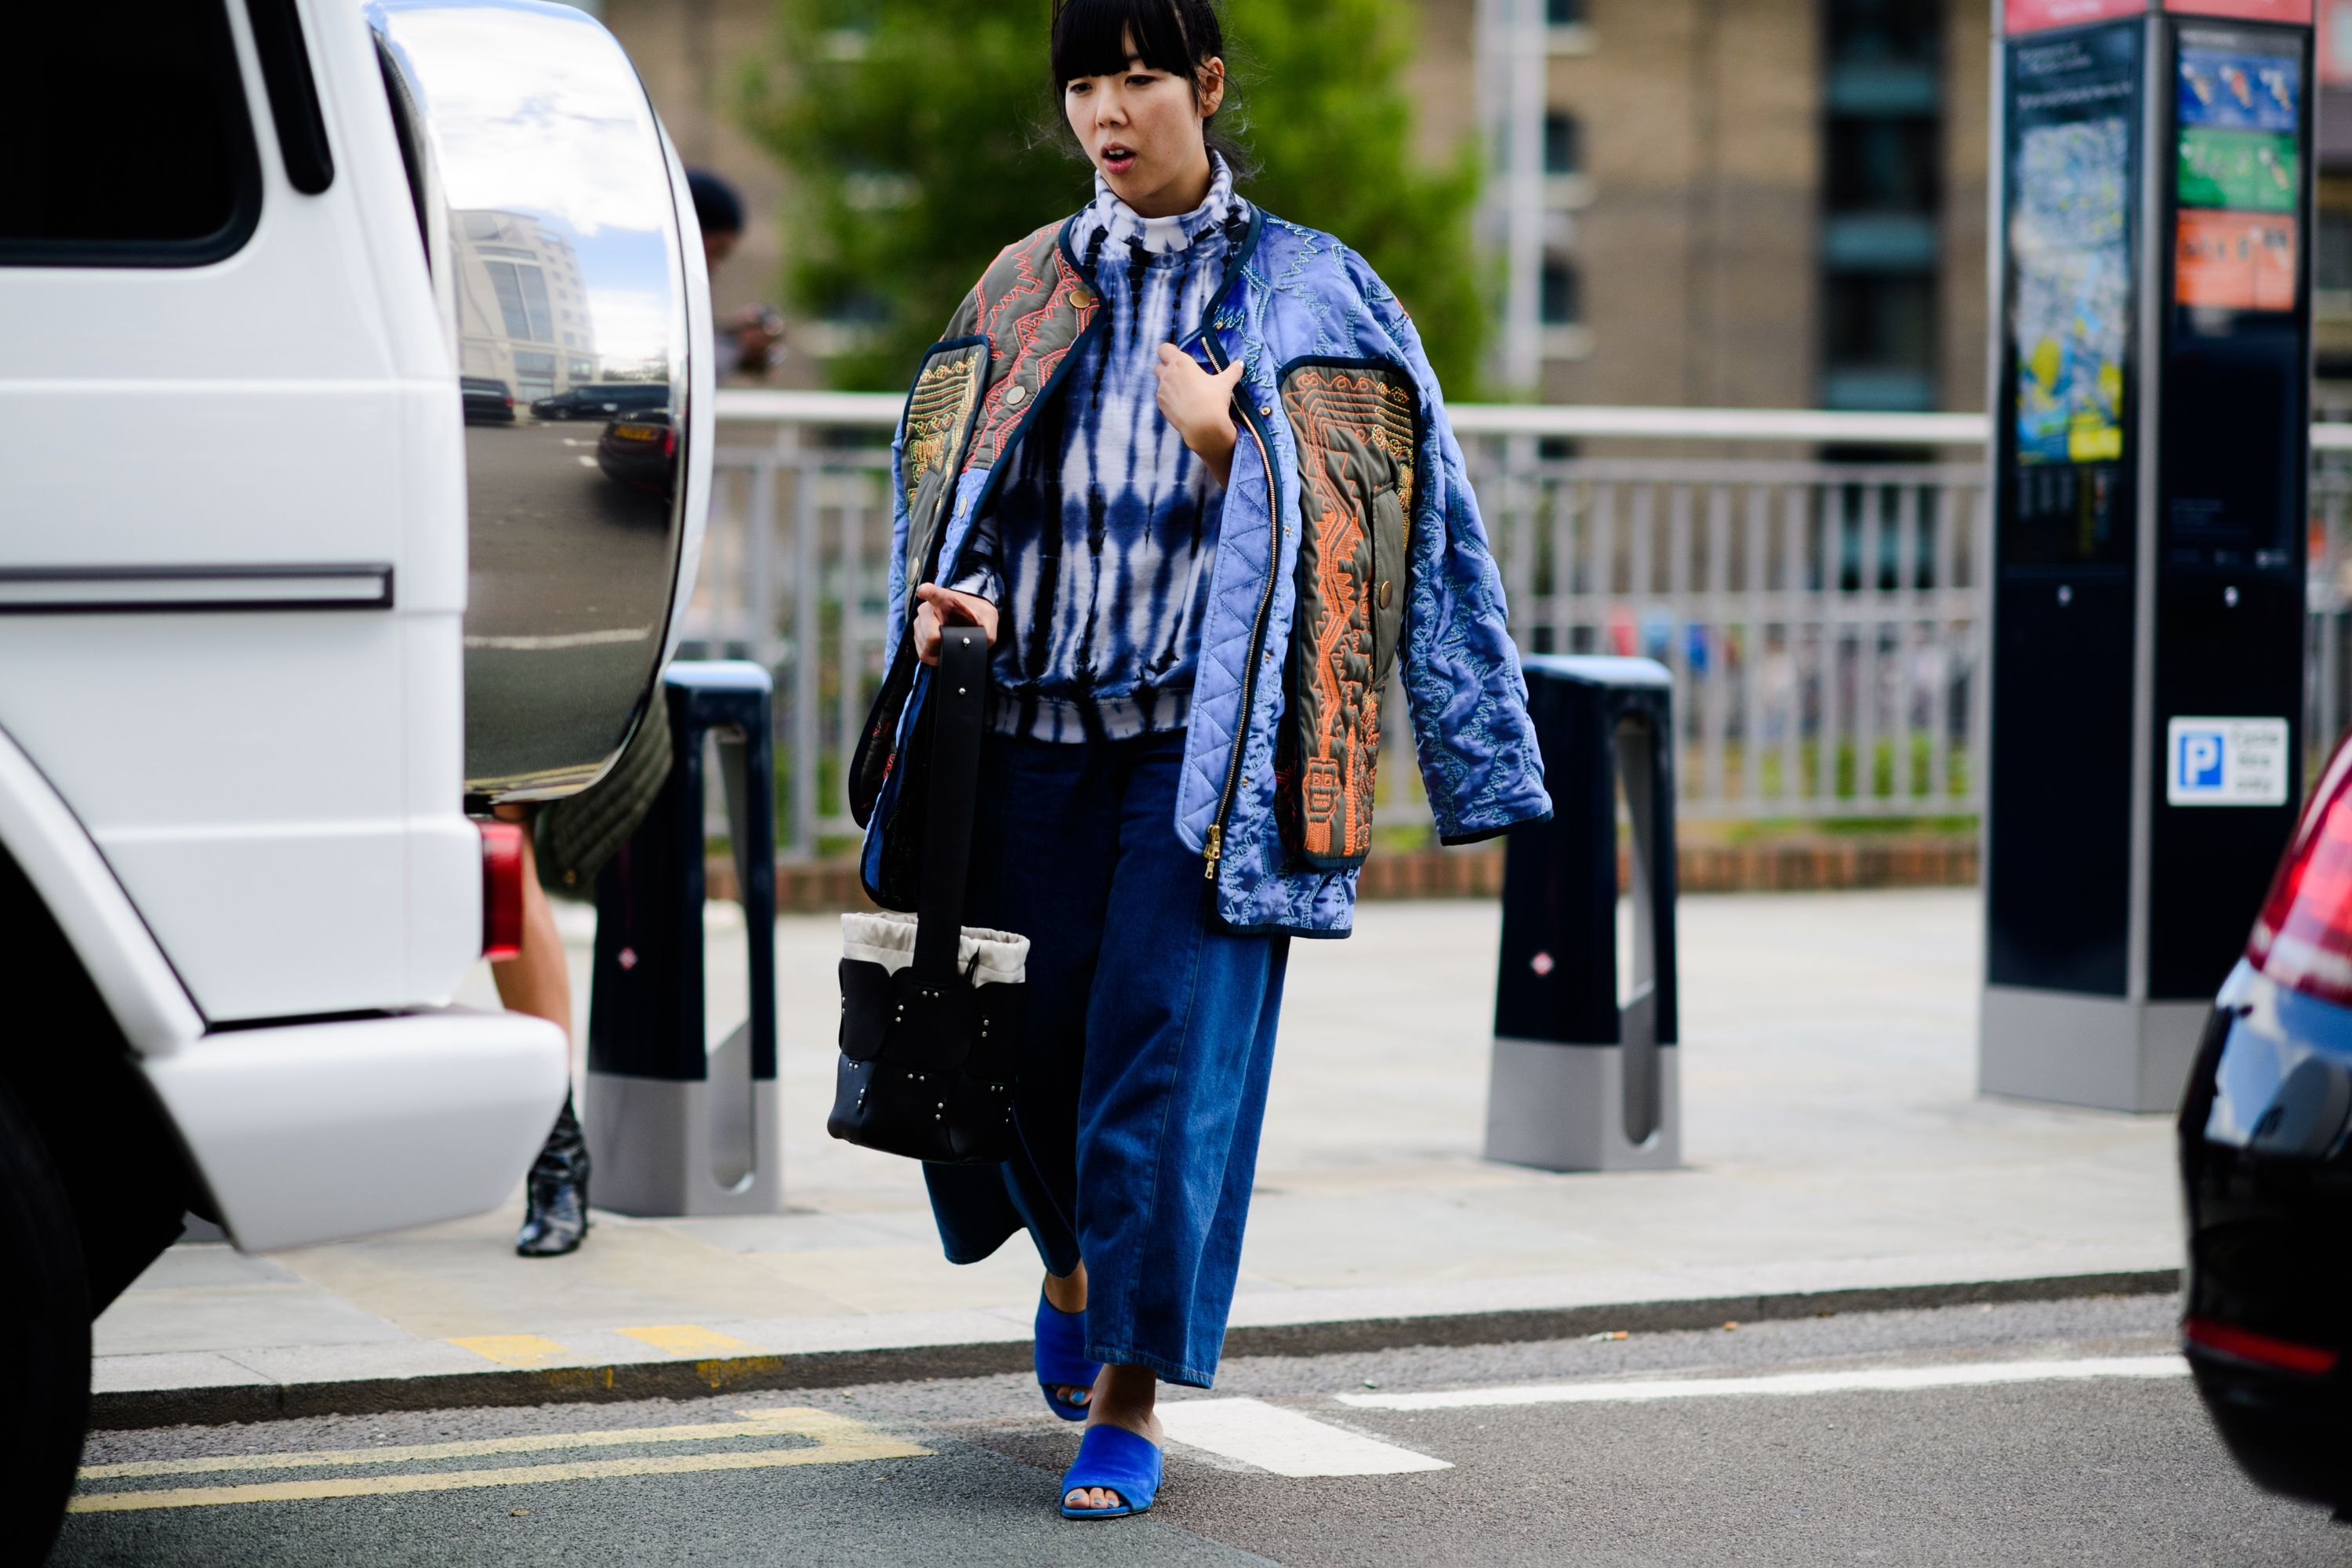 london-lfw-street-style-ss18-day-2-tyler-joe-098-1505754157